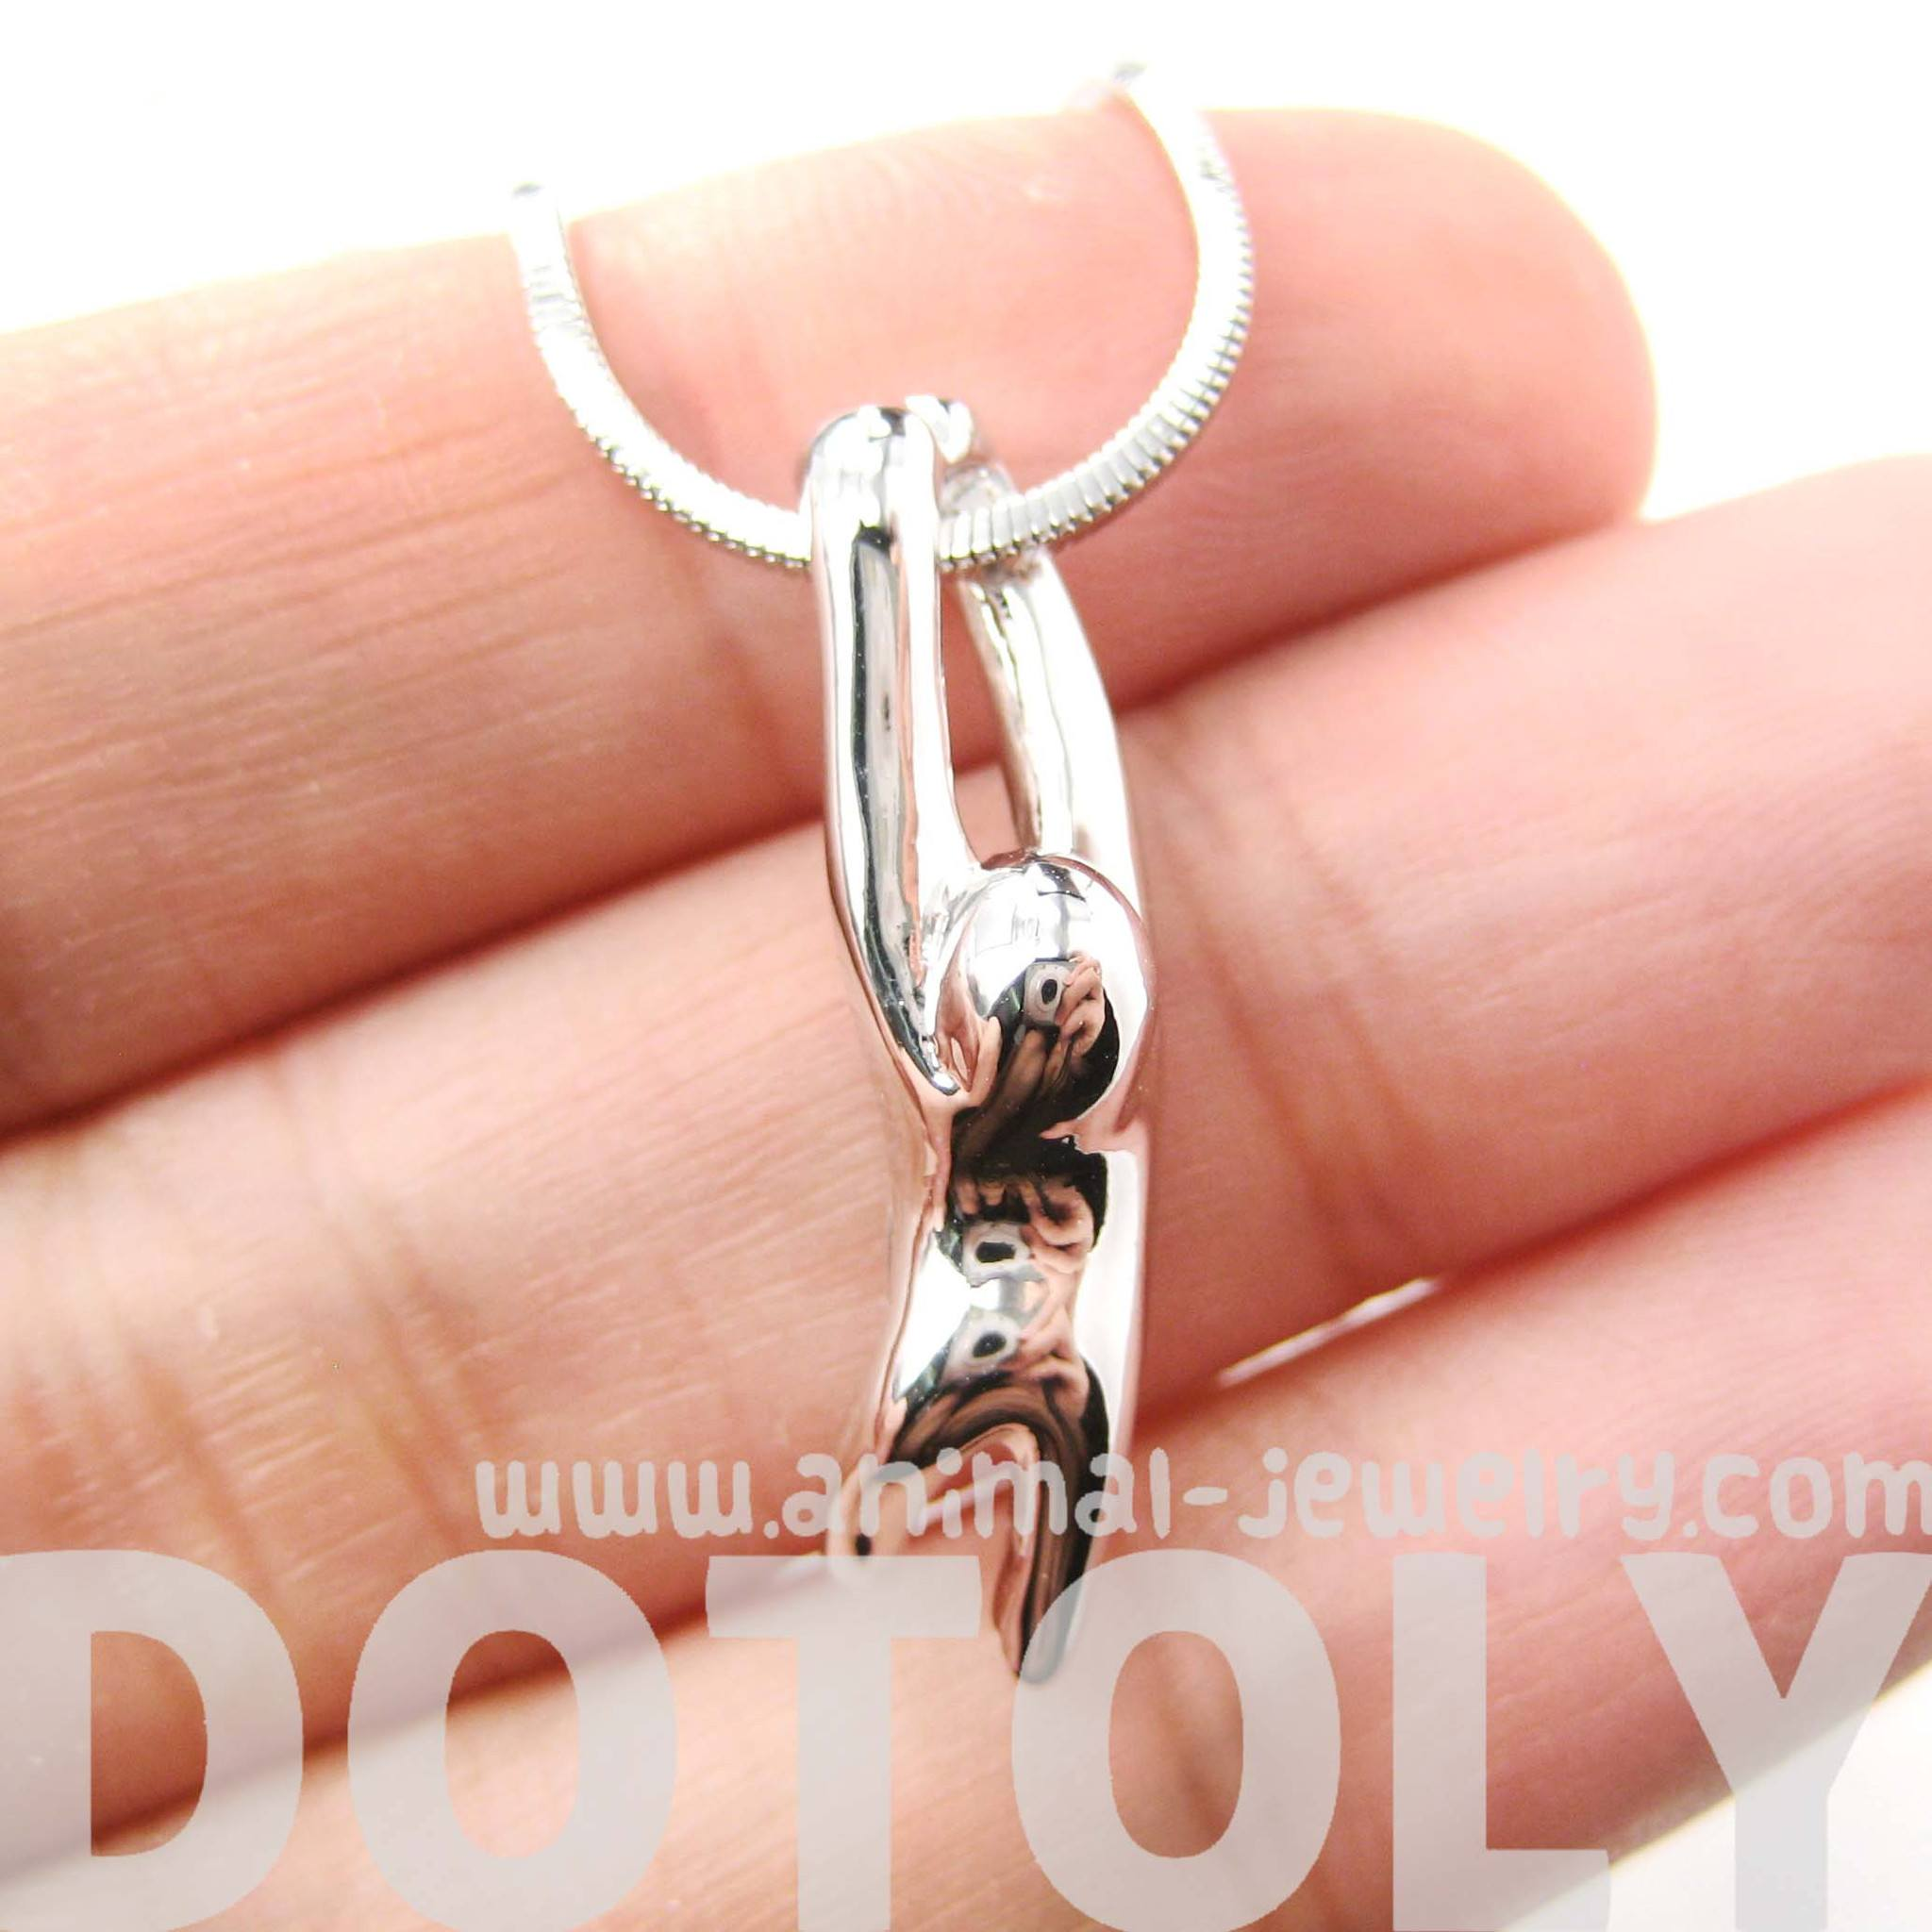 sloth-dangling-sleek-abstract-animal-pendant-necklace-in-silver-dotoly